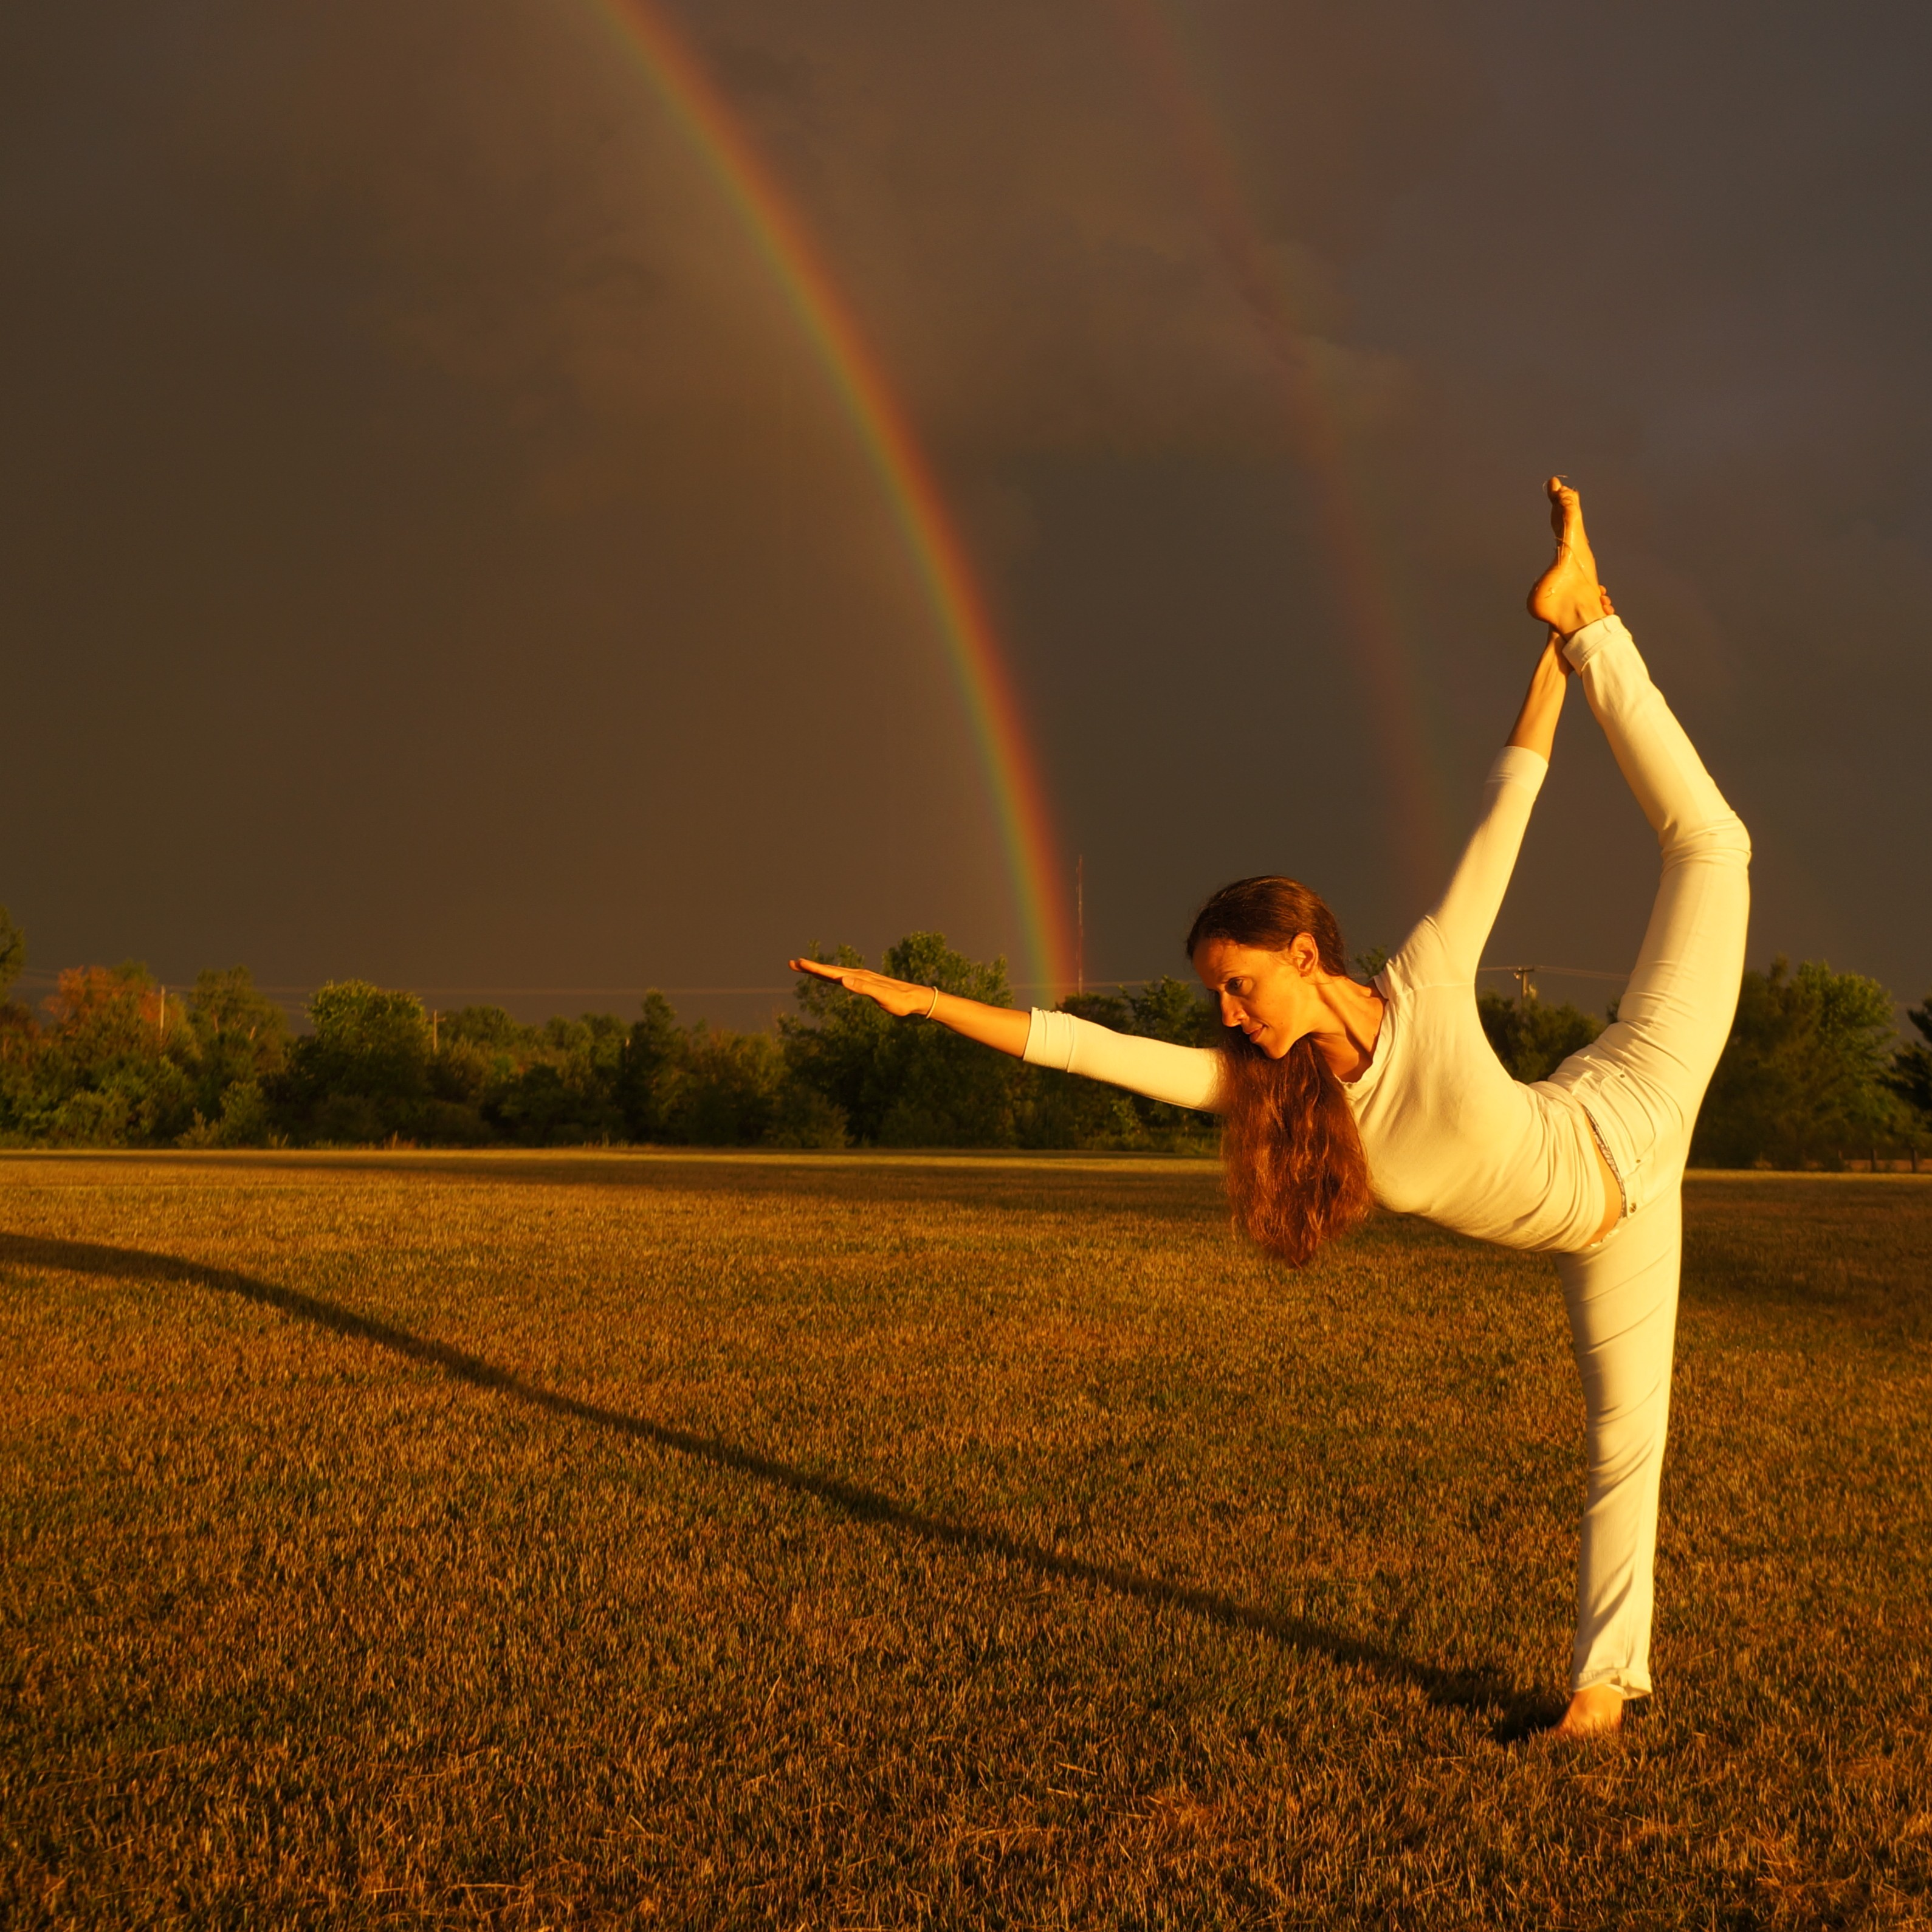 intermediate standing bow pulling standing rainbow pulling